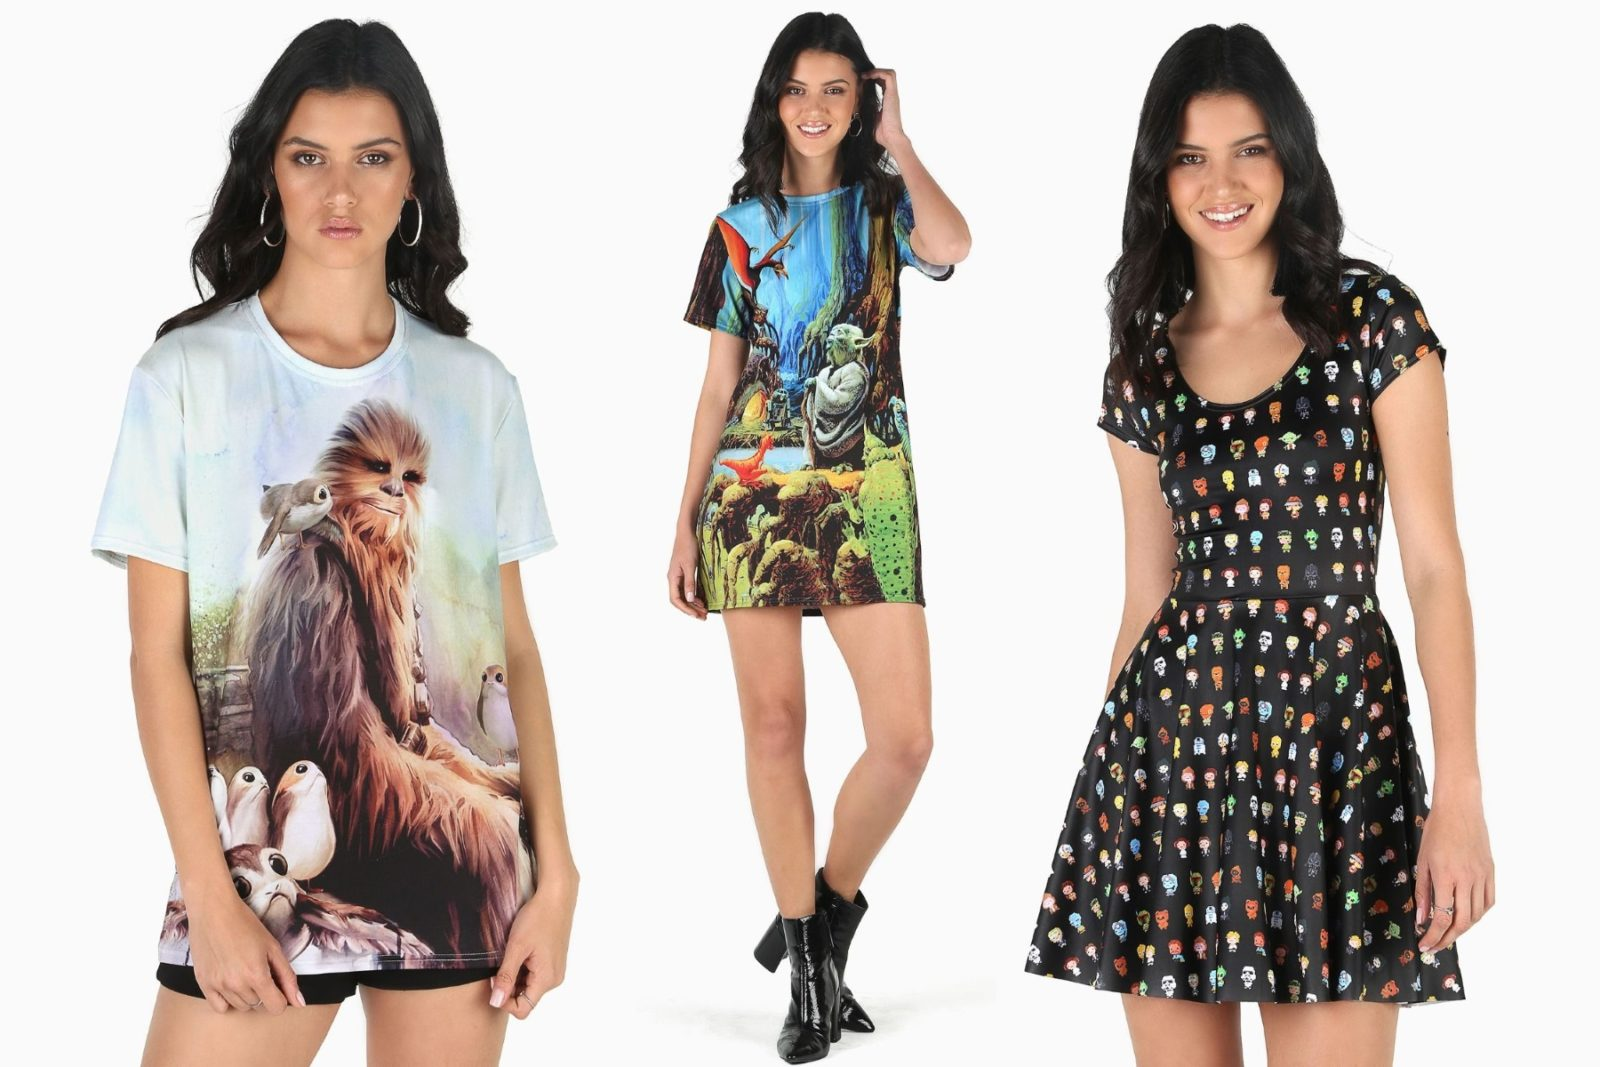 Black Milk Clothing x Star Wars 2018 Collection Launch